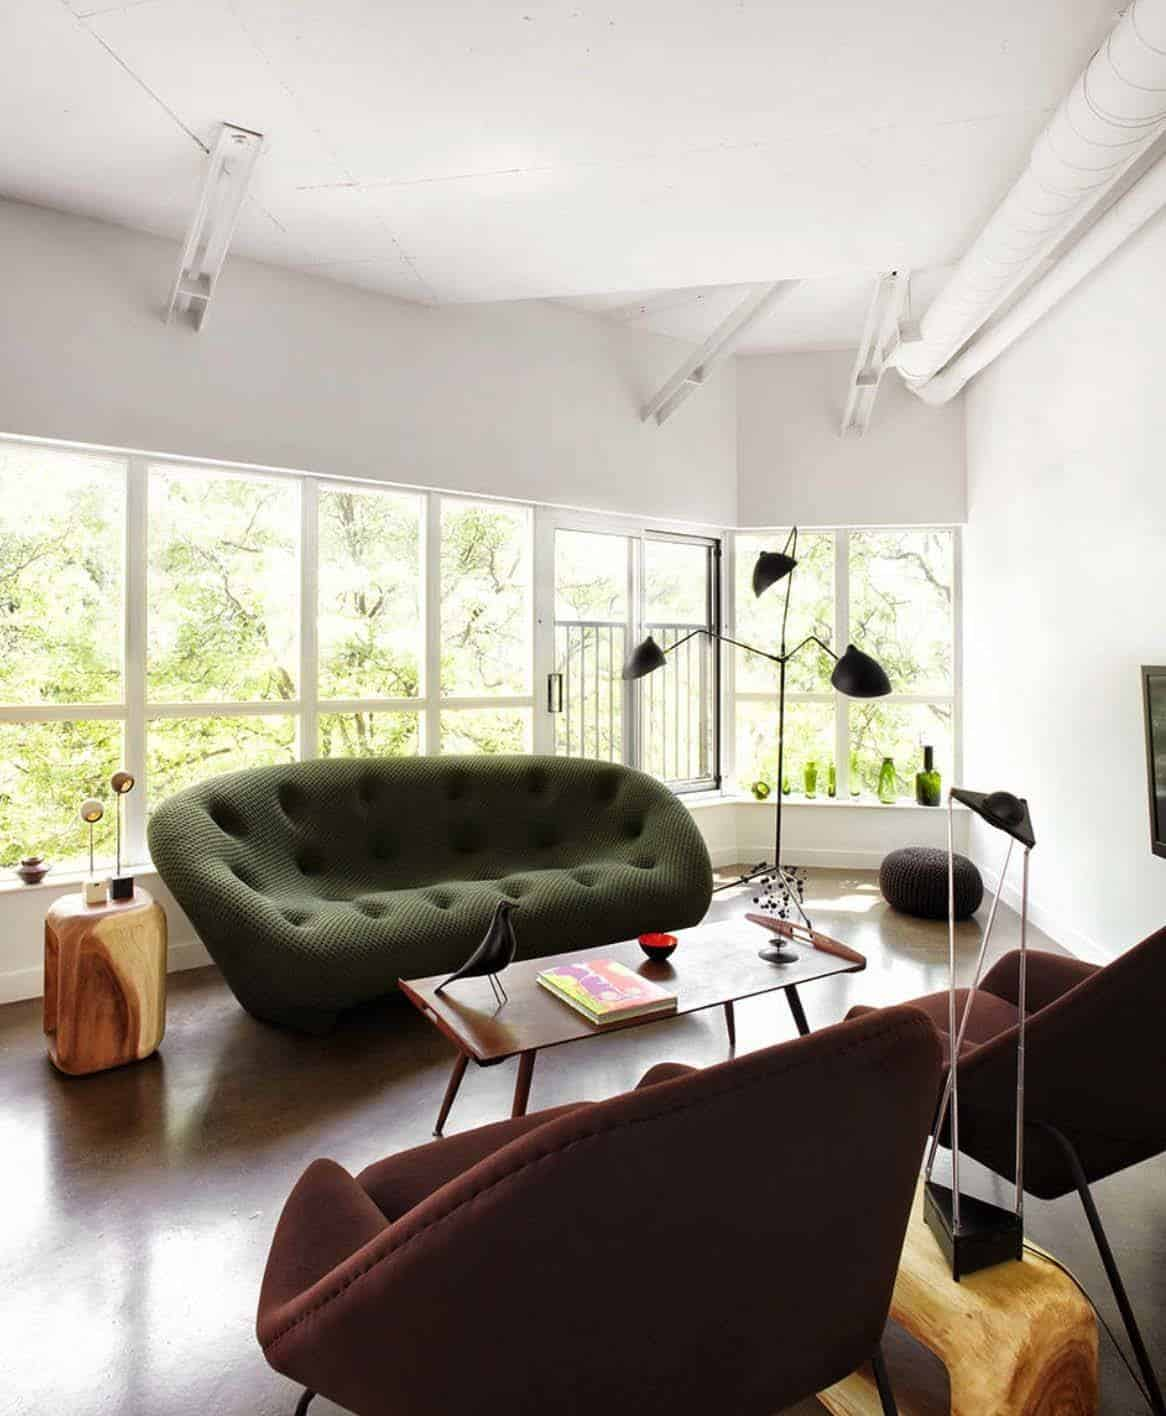 Bachelor Loft-Stephane Chamard-01-1 Kindesign